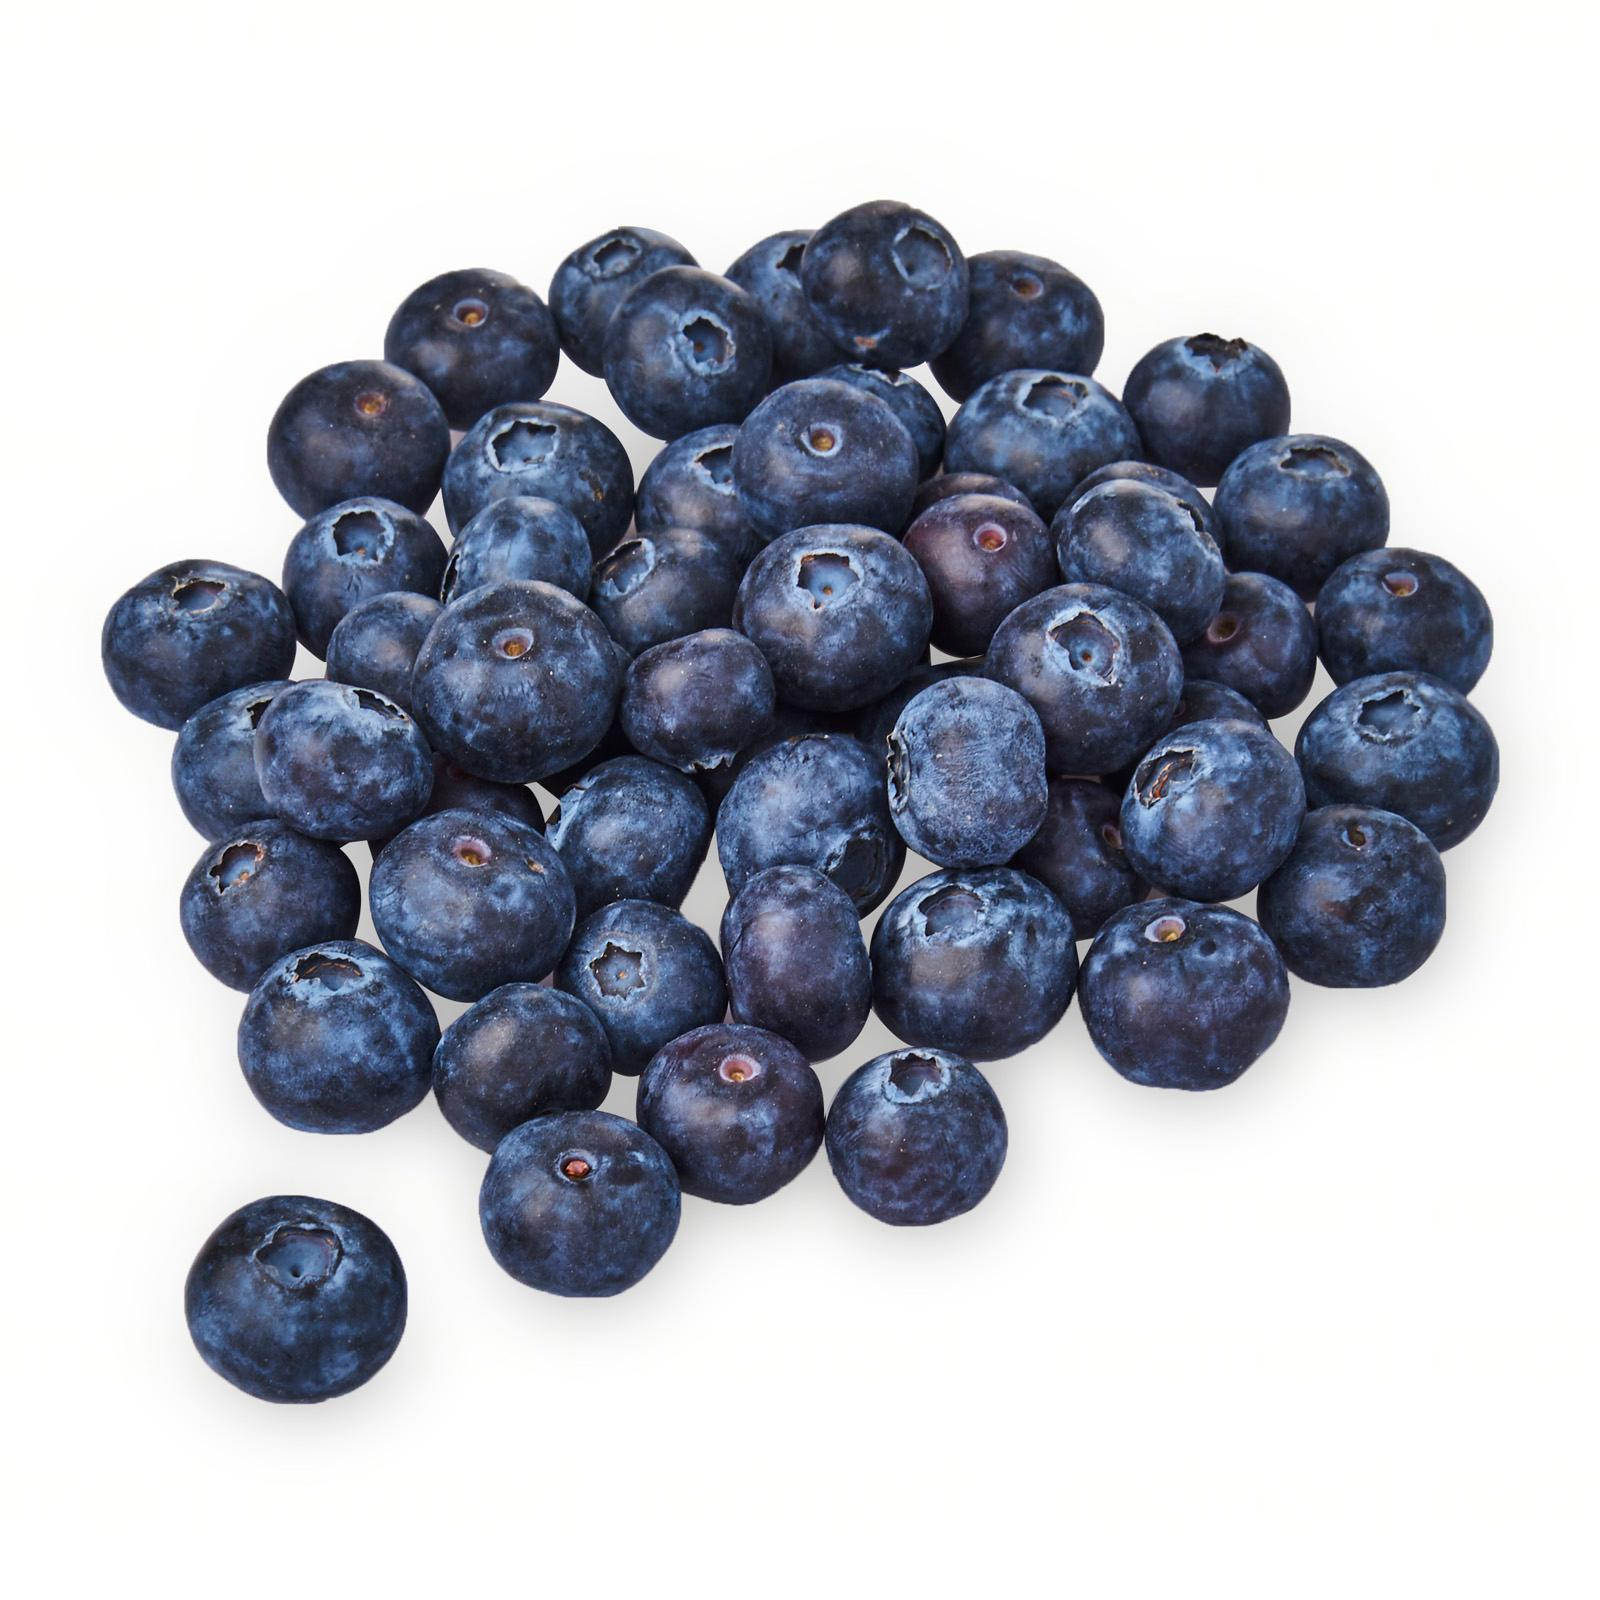 Sweet & Juicy Blueberries By Redmart.